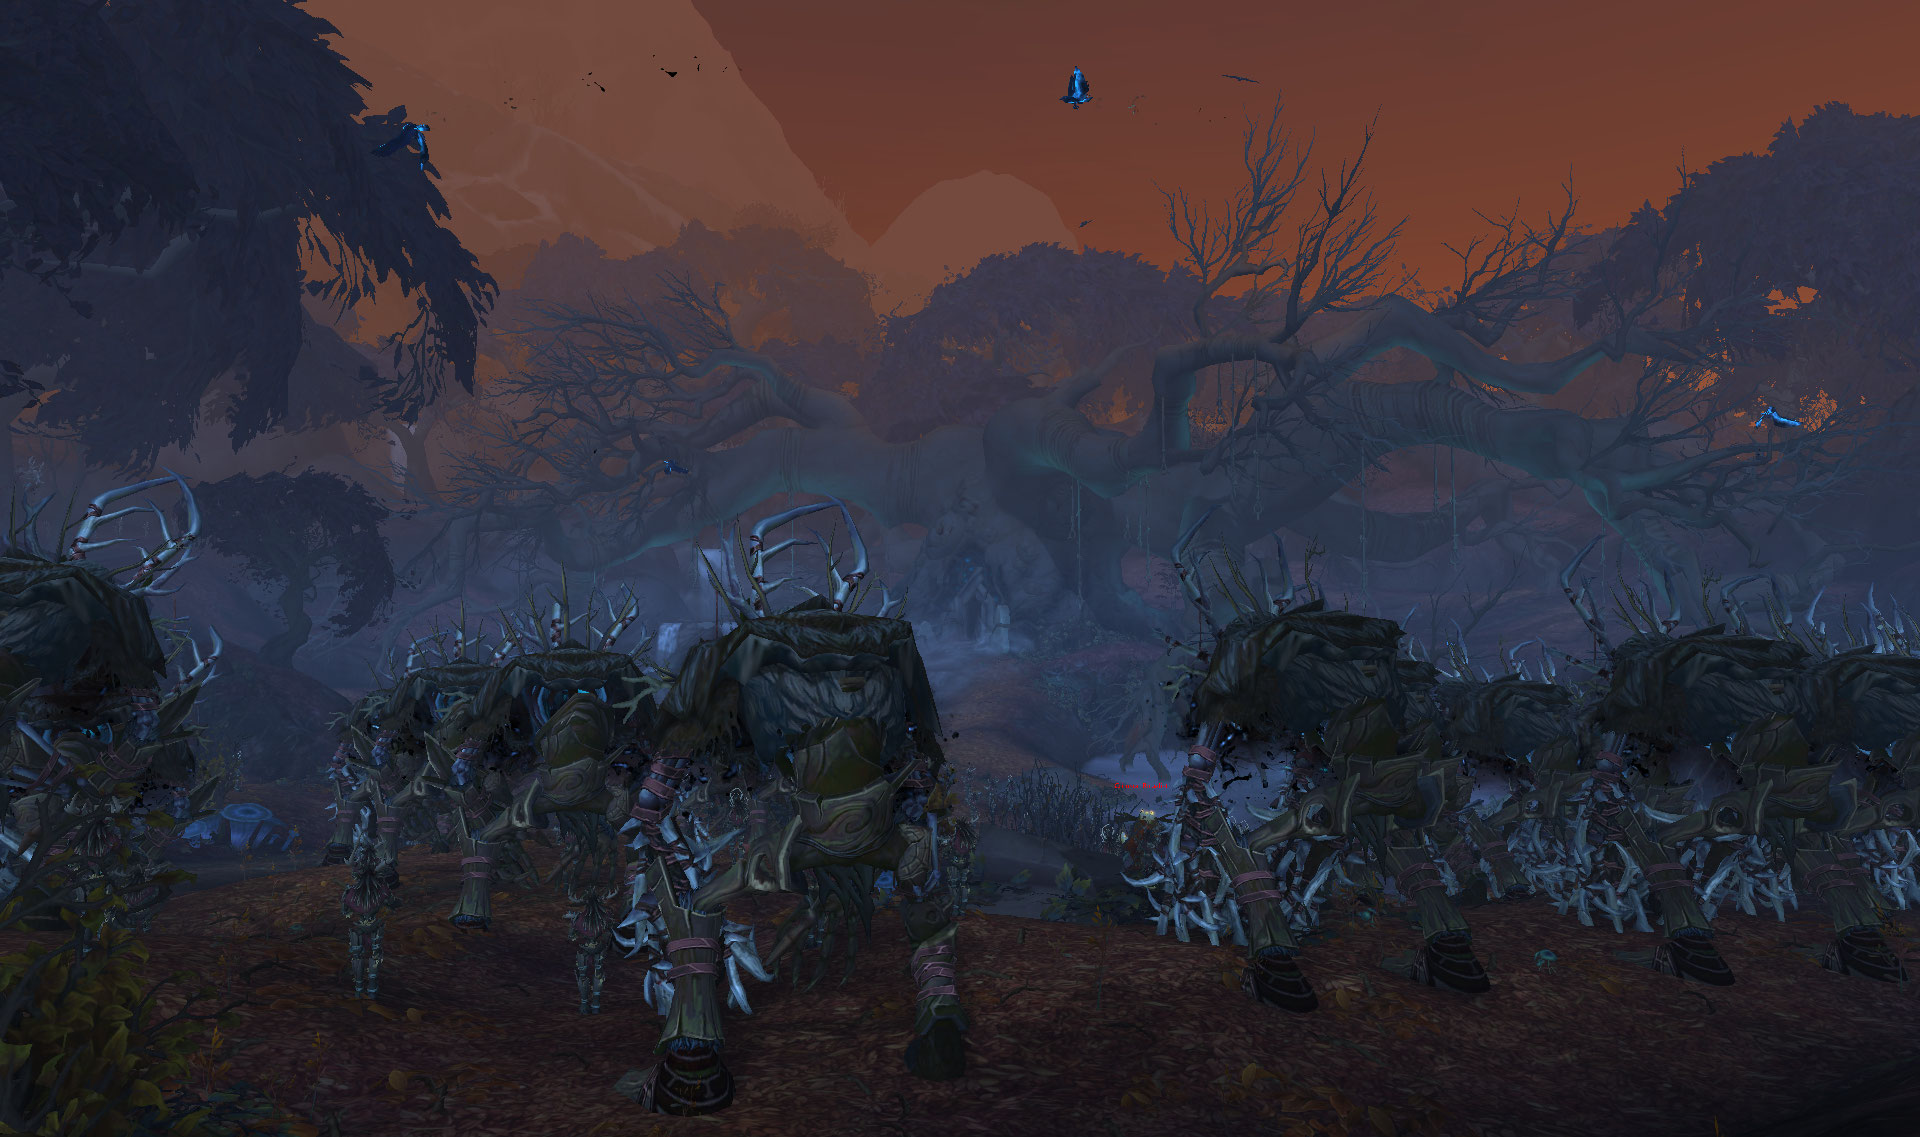 Screenshot de la zone de Drustvar dans World of Warcraft: Battle for Azeroth.